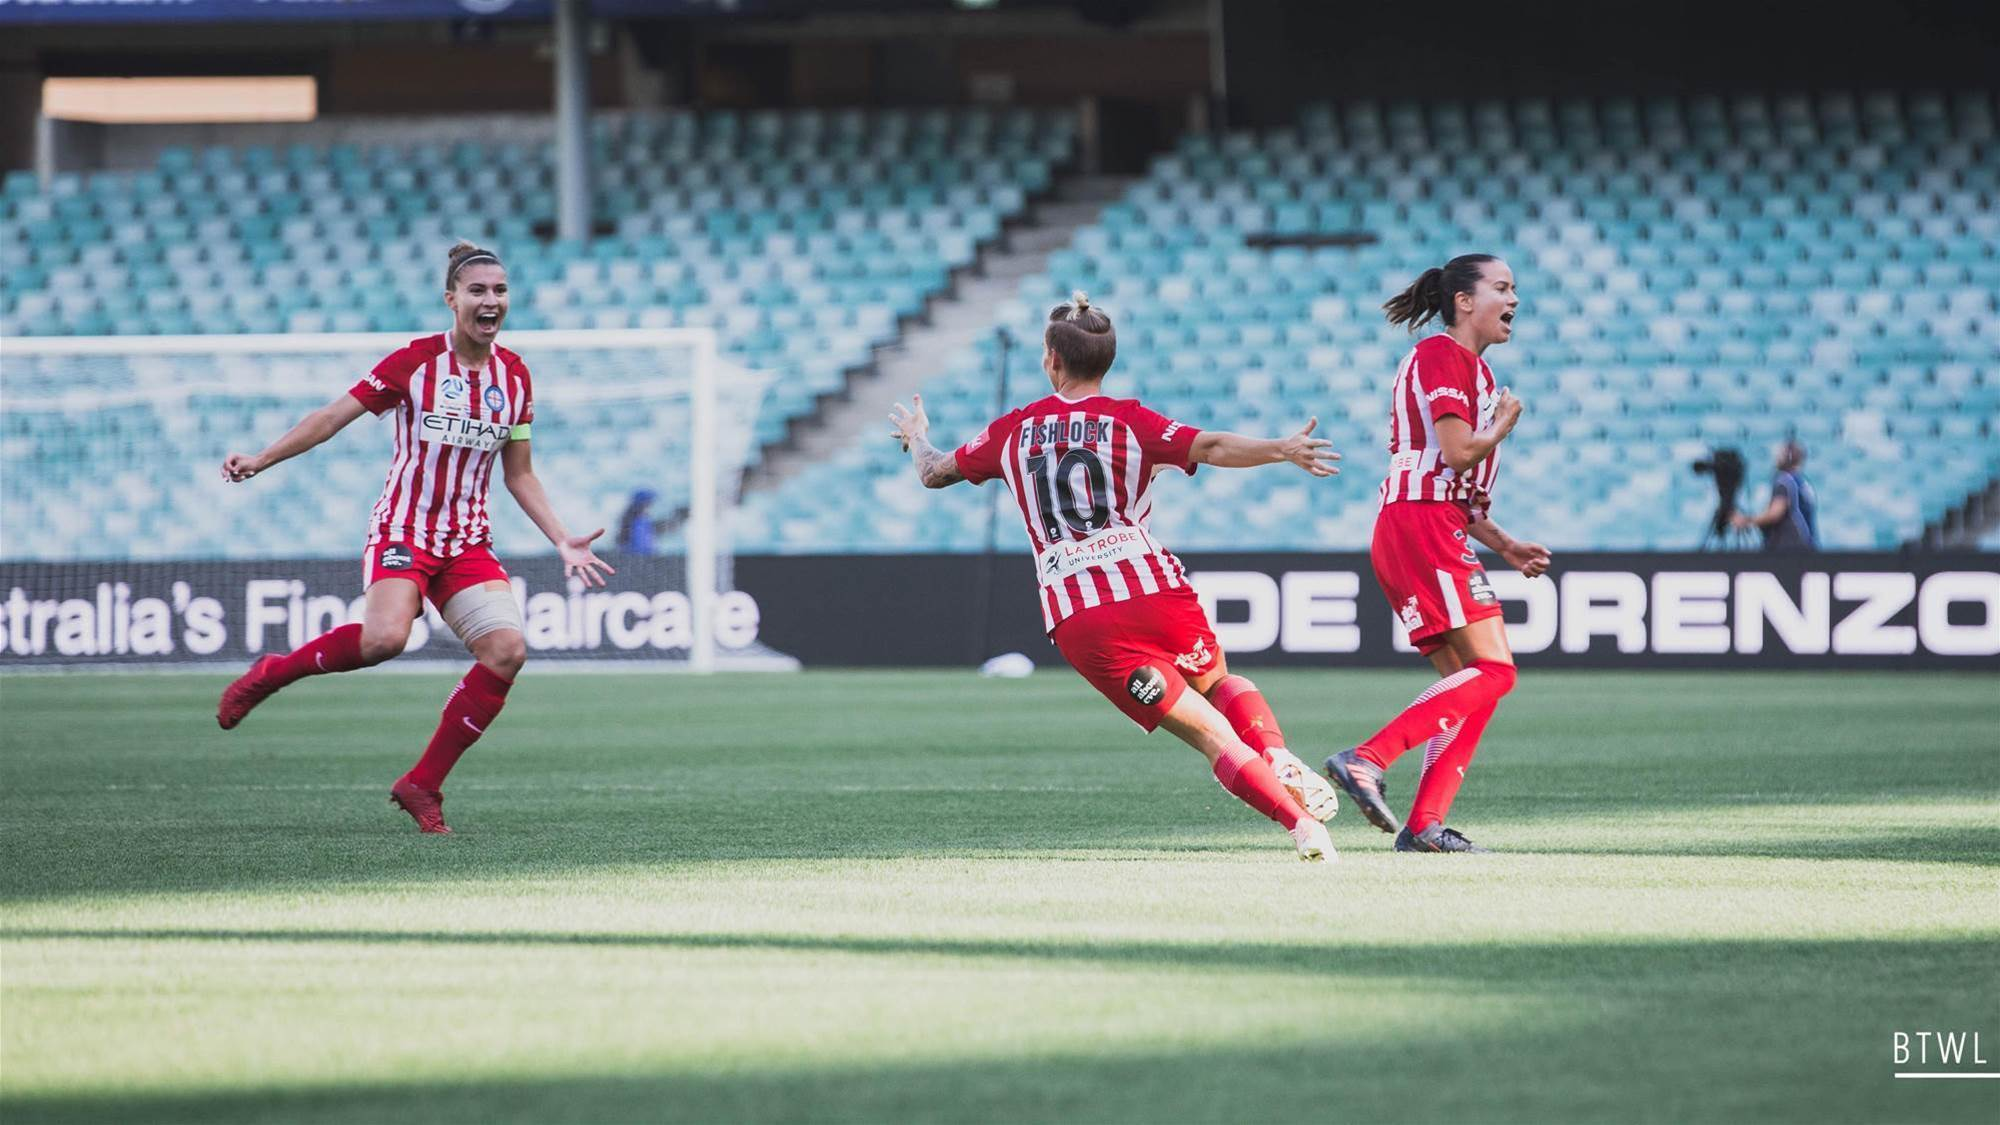 City break Australian record with third Championship